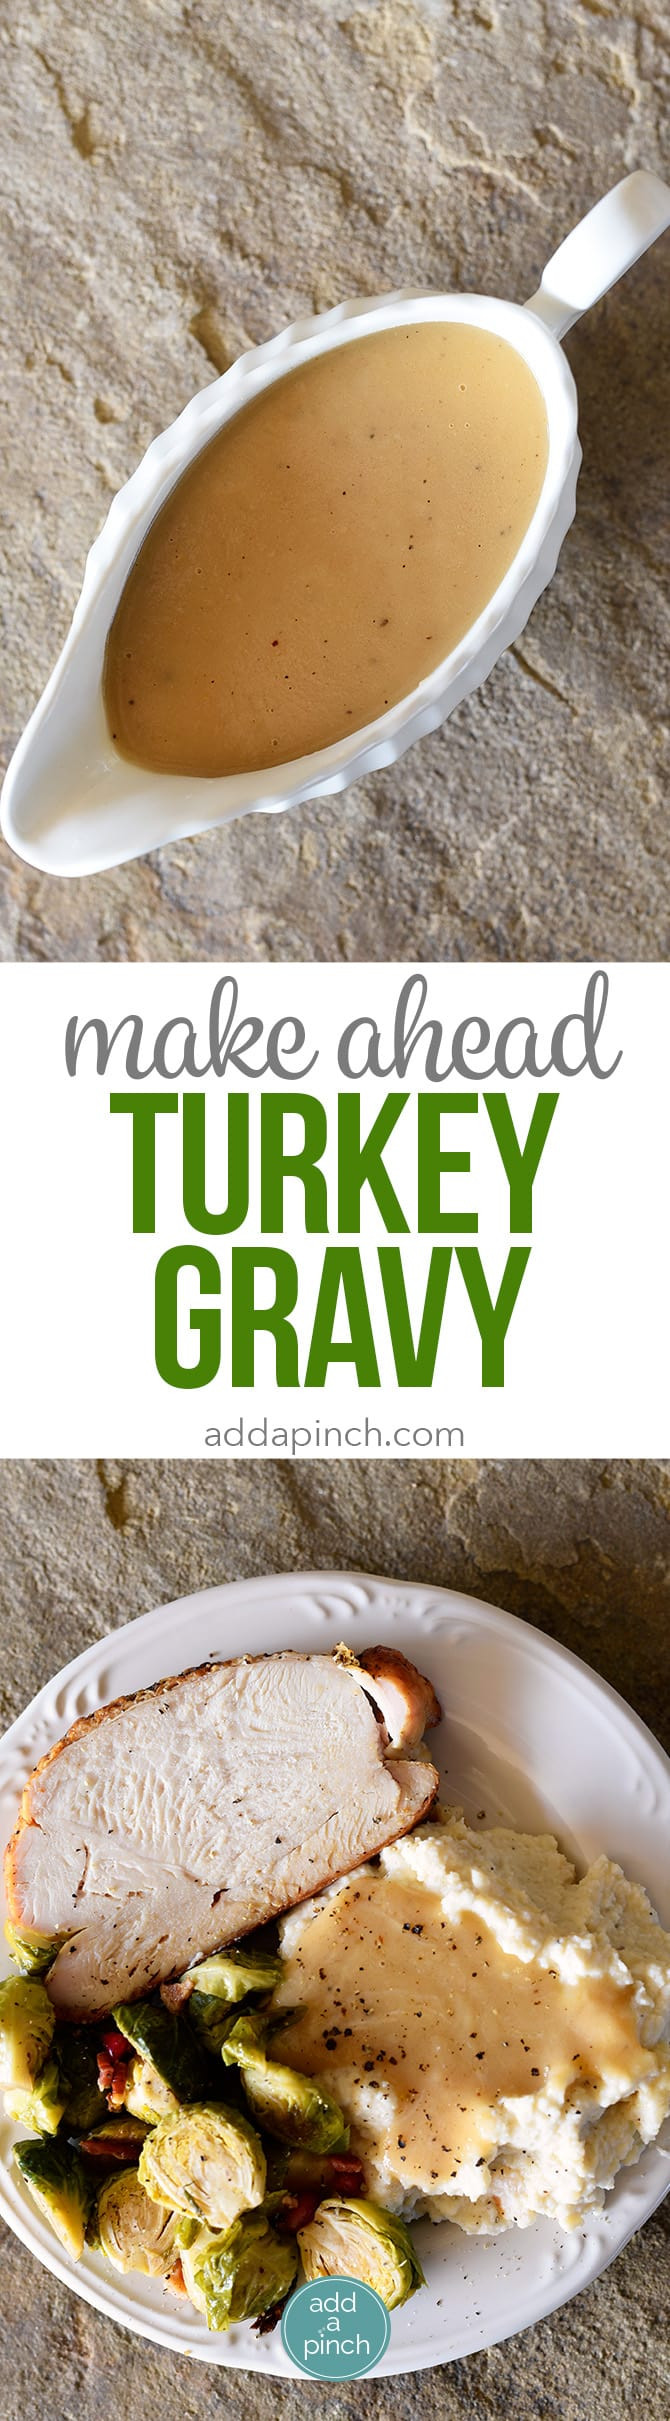 Make Ahead Gravy For Thanksgiving  Make Ahead Turkey Gravy Recipe Add a Pinch